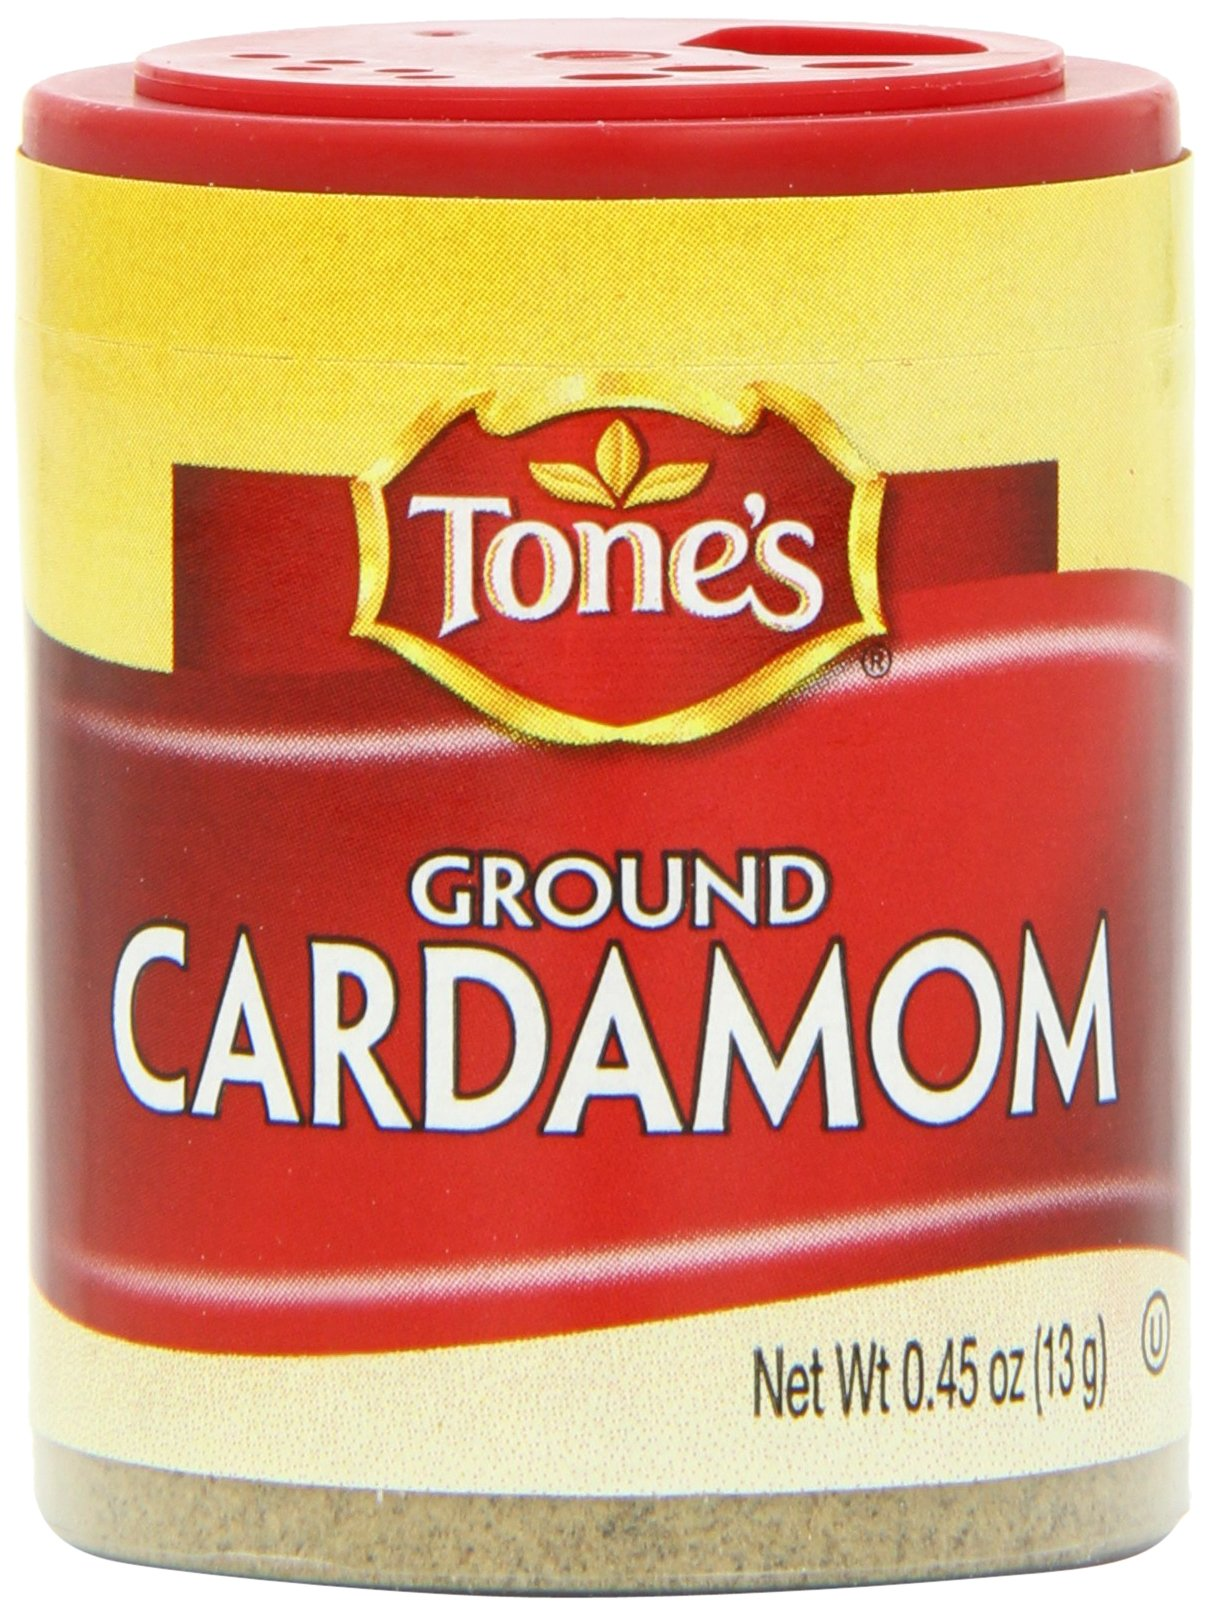 Tone's Mini's Cardamom, Ground, 0.45 Ounce (Pack of 6) by Tone's (Image #1)